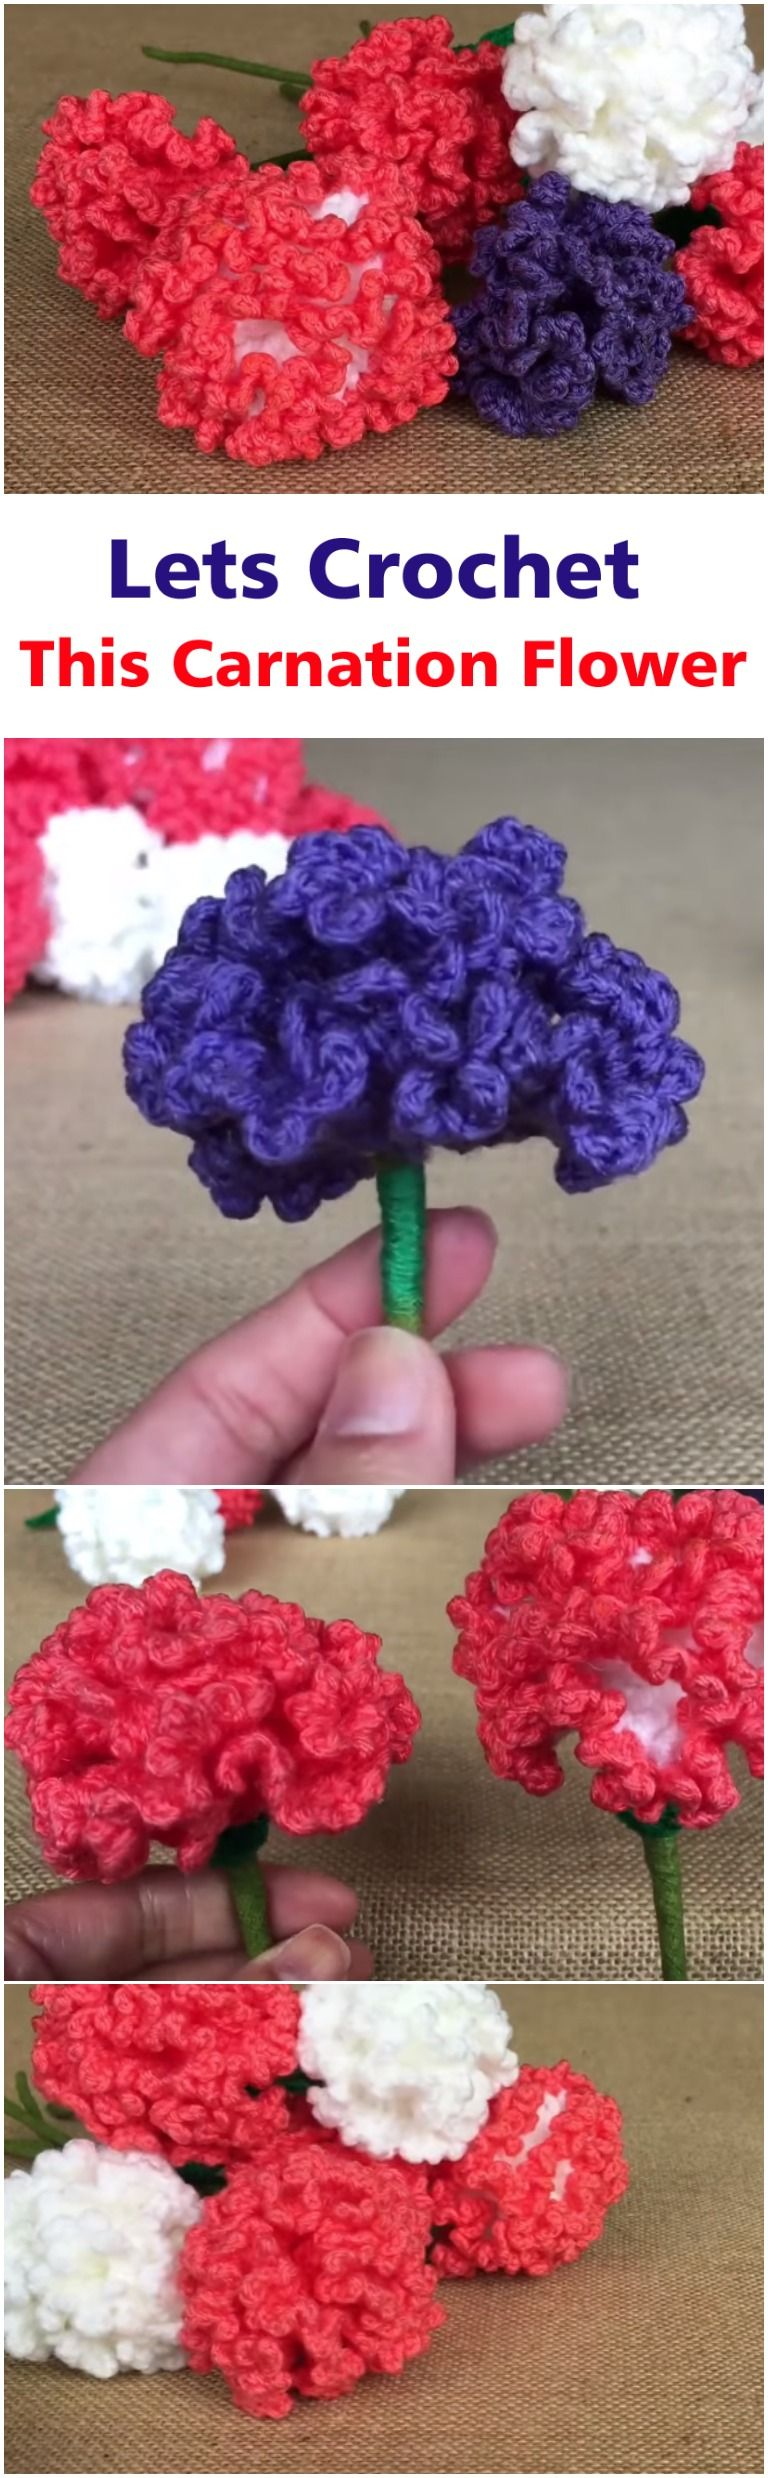 Crochet Carnation Flowers | Blogger Crochet Afghan Patterns We Love ...